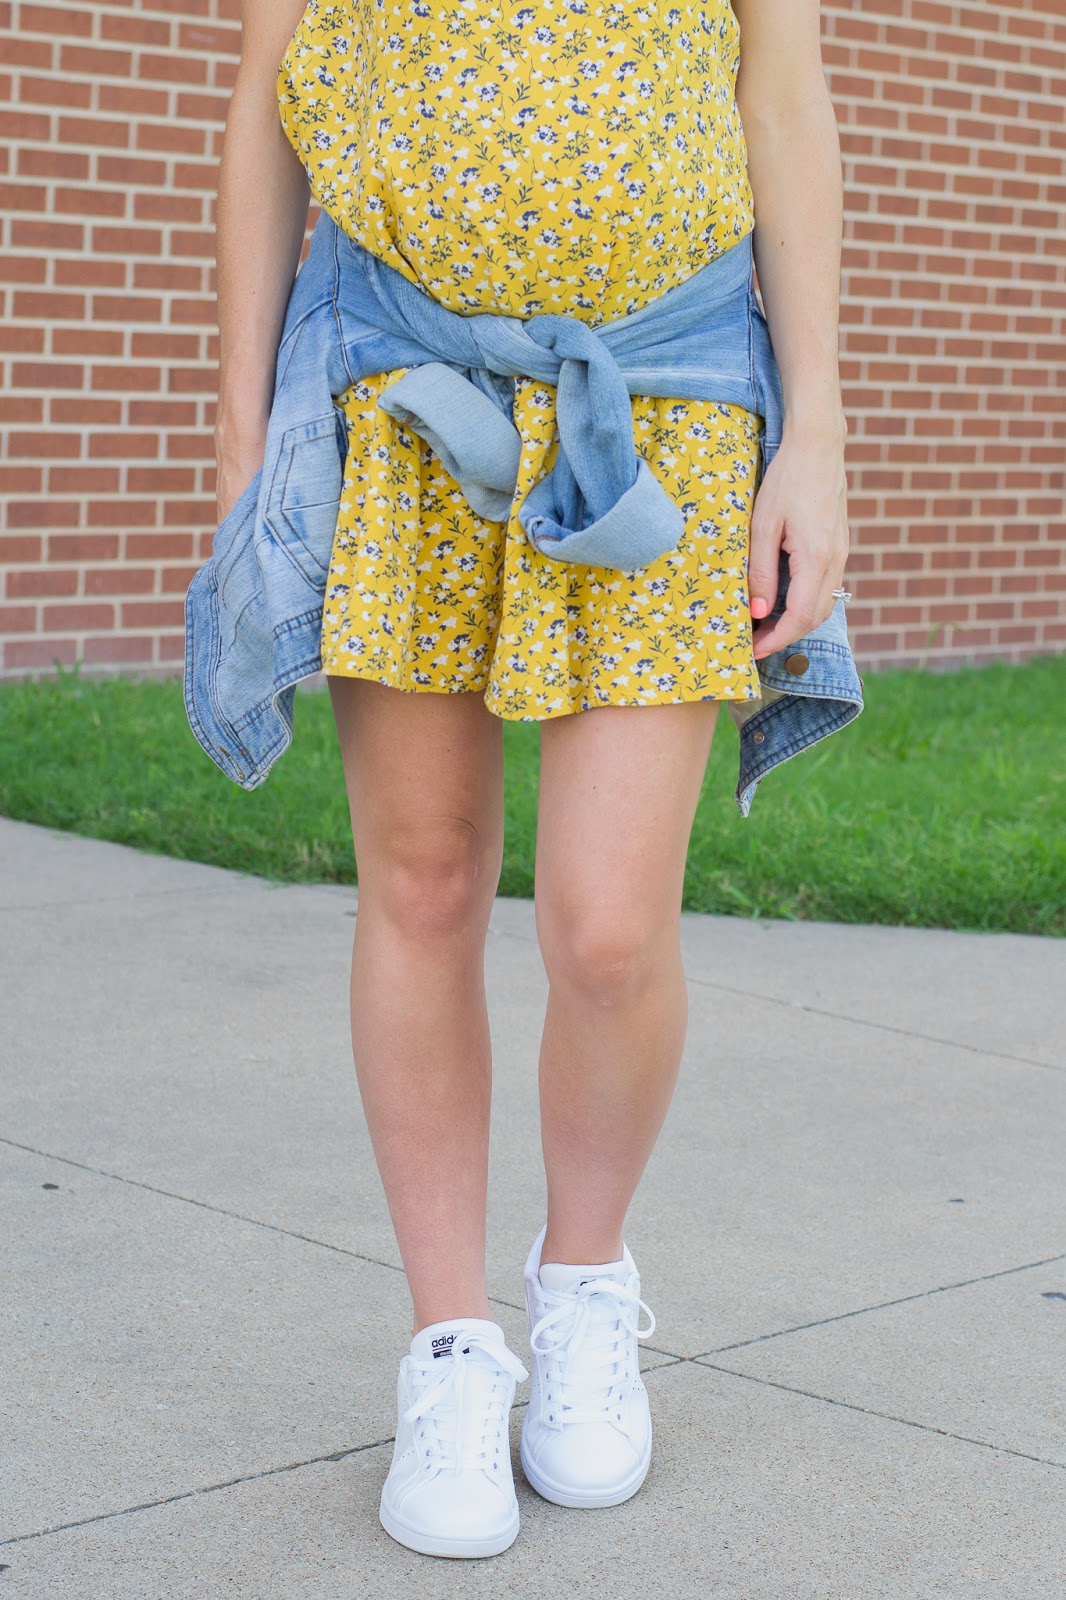 Summer Dress with sneakers and denim jacket